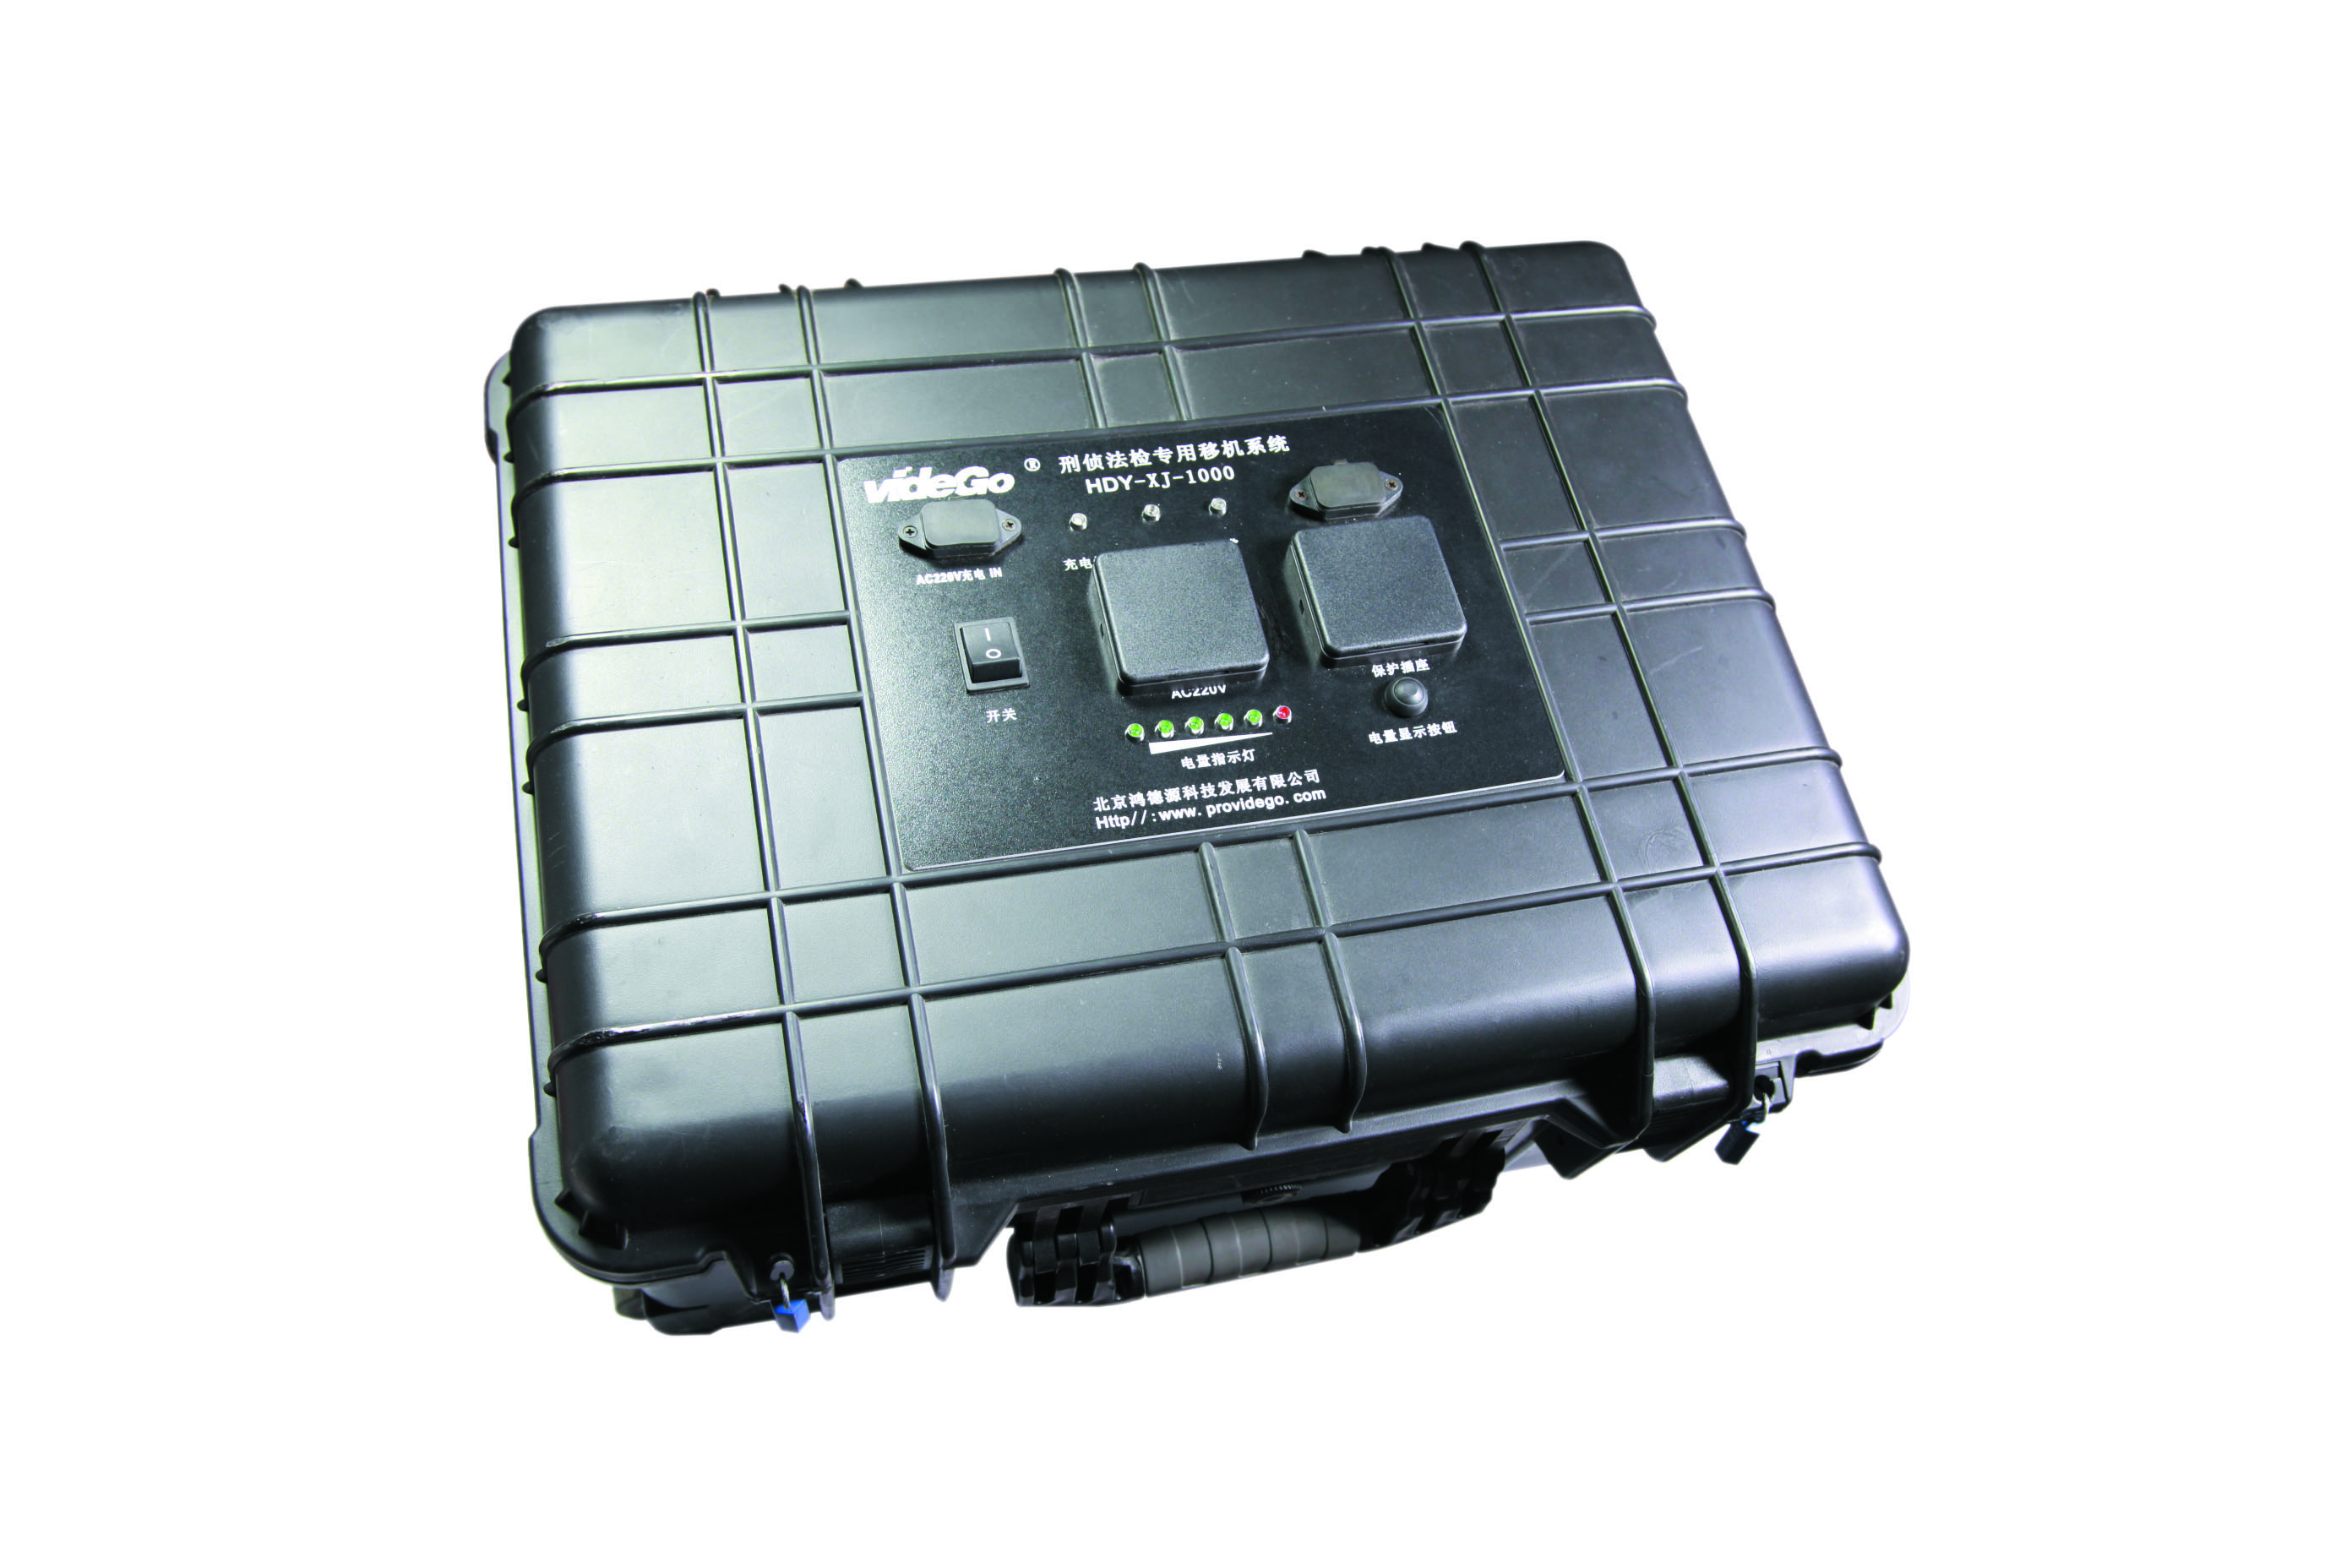 videGo emergency portable power supply li-ion battery pack 100wh to 3000wh statelite power OEM facto